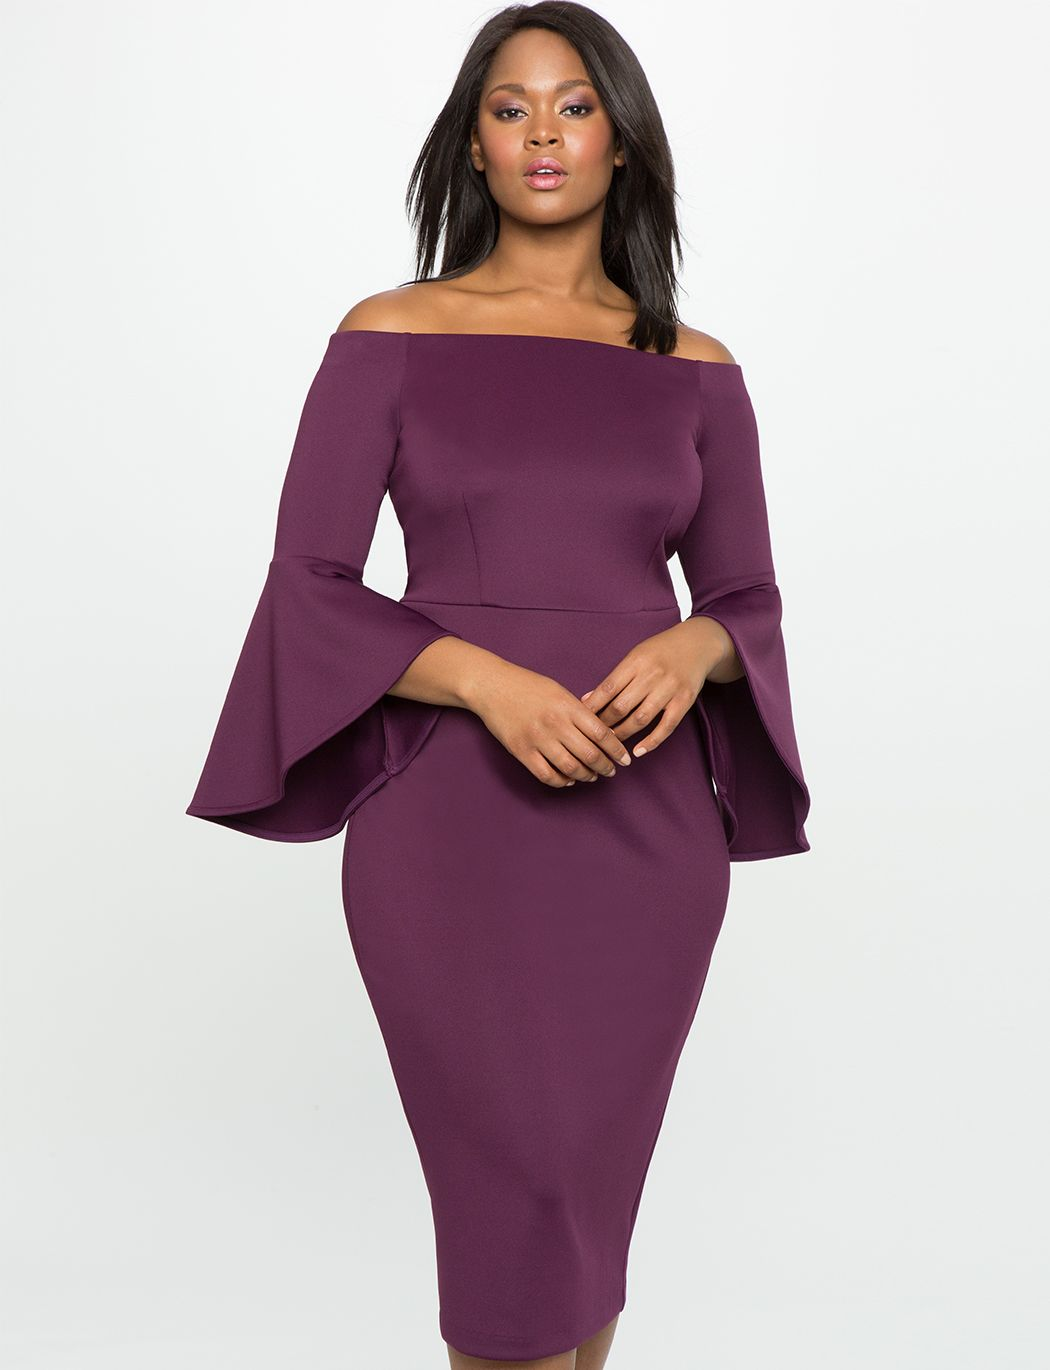 5adda5f036734 Studio Off the Shoulder Flare Sleeve Dress